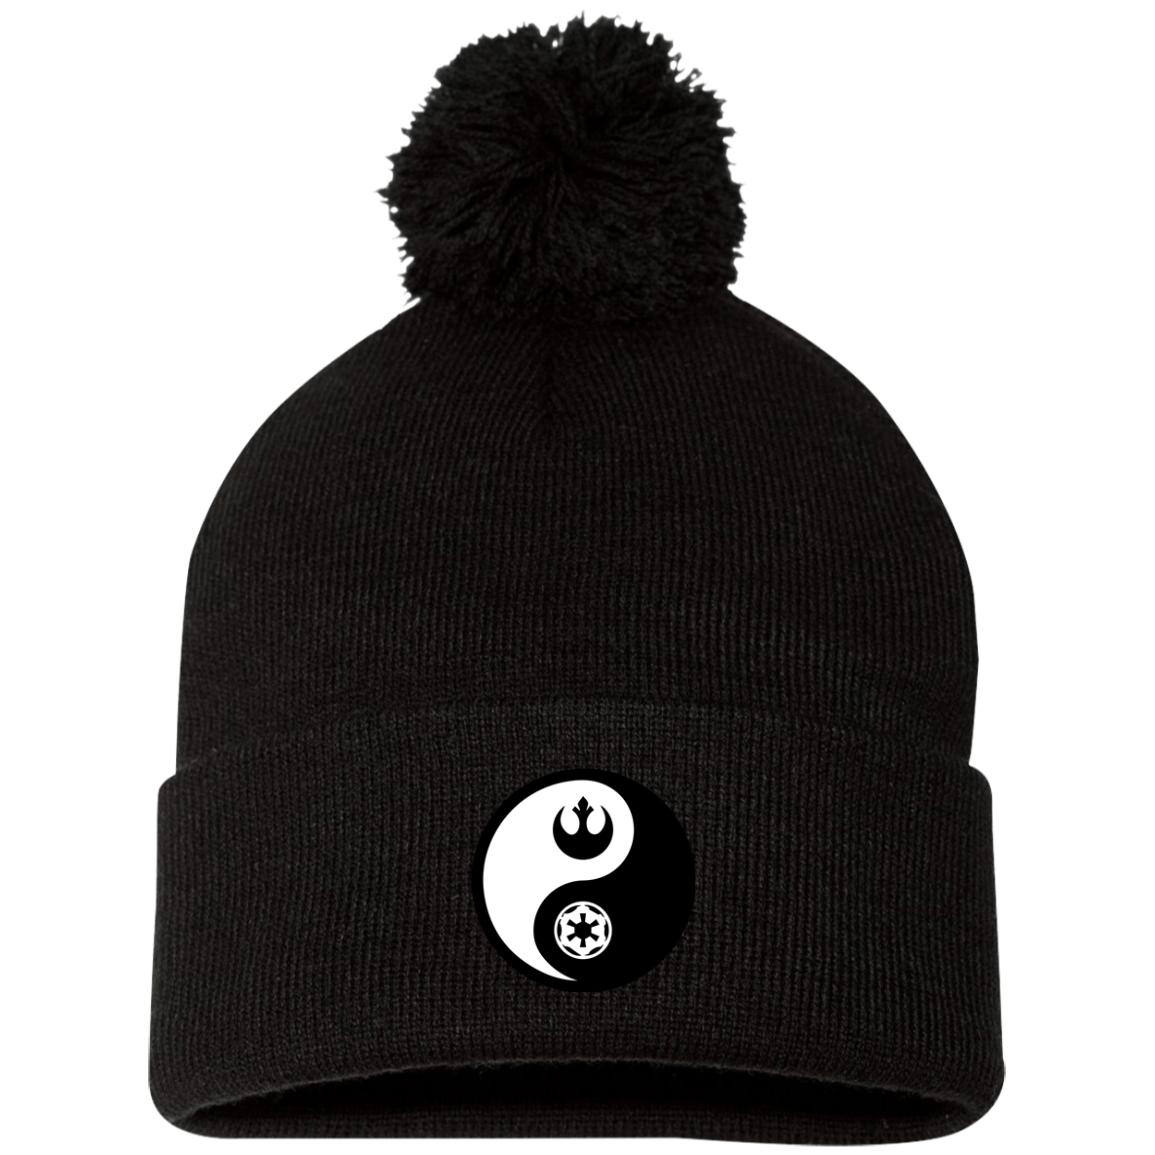 Rebel & Empire Yin Yang - Embroidered Pom Pom Hat